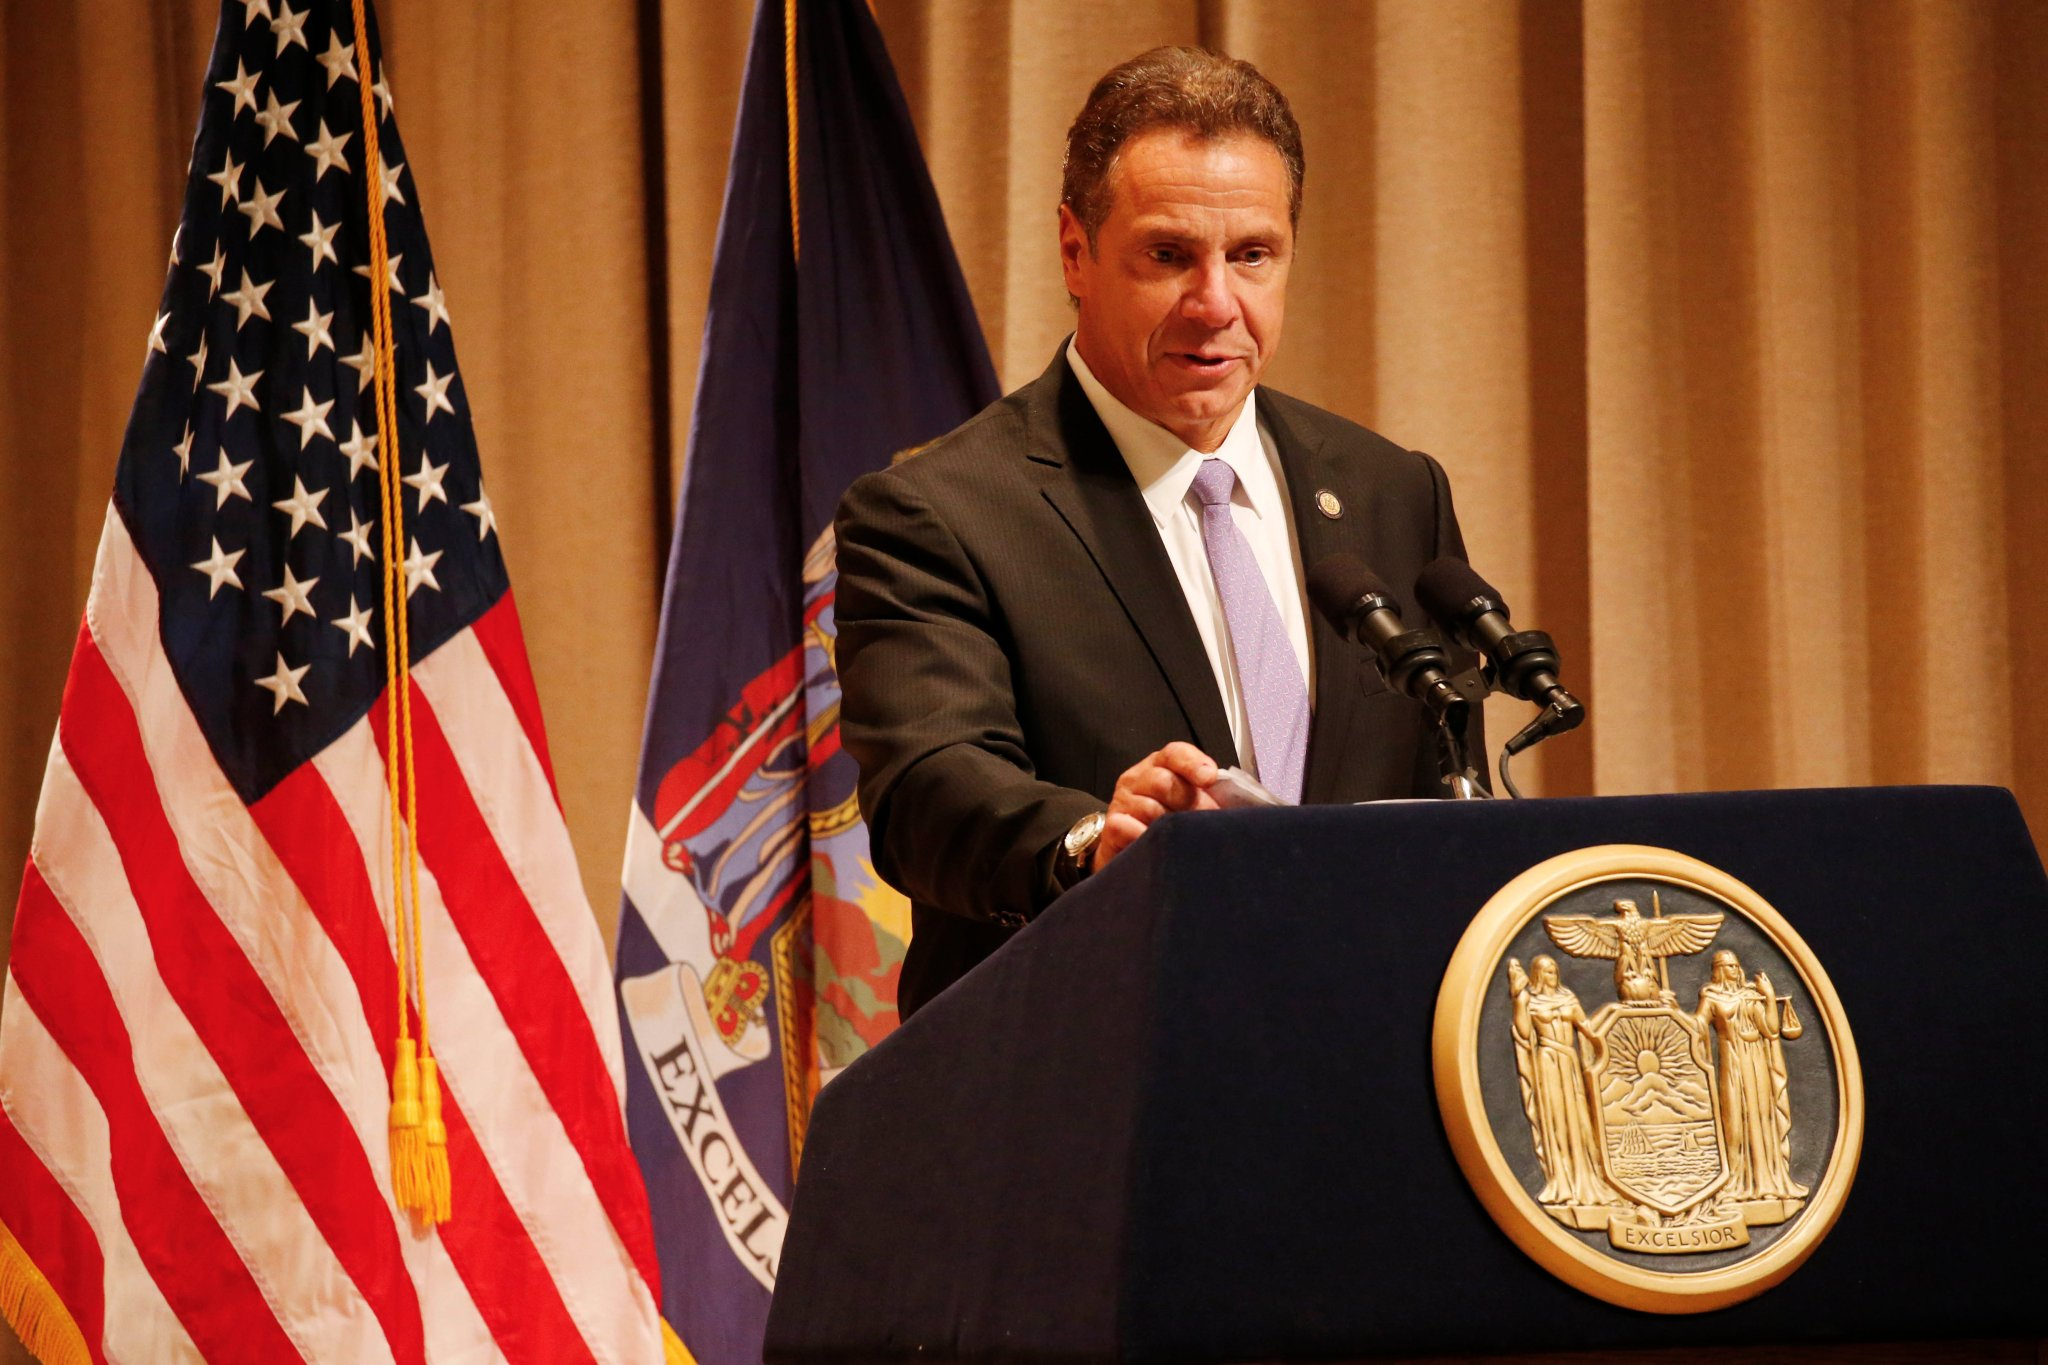 Gov. Andrew M. Cuomo speaks at the Albright-Knox Art Gallery in September. (Derek Gee/Buffalo News)